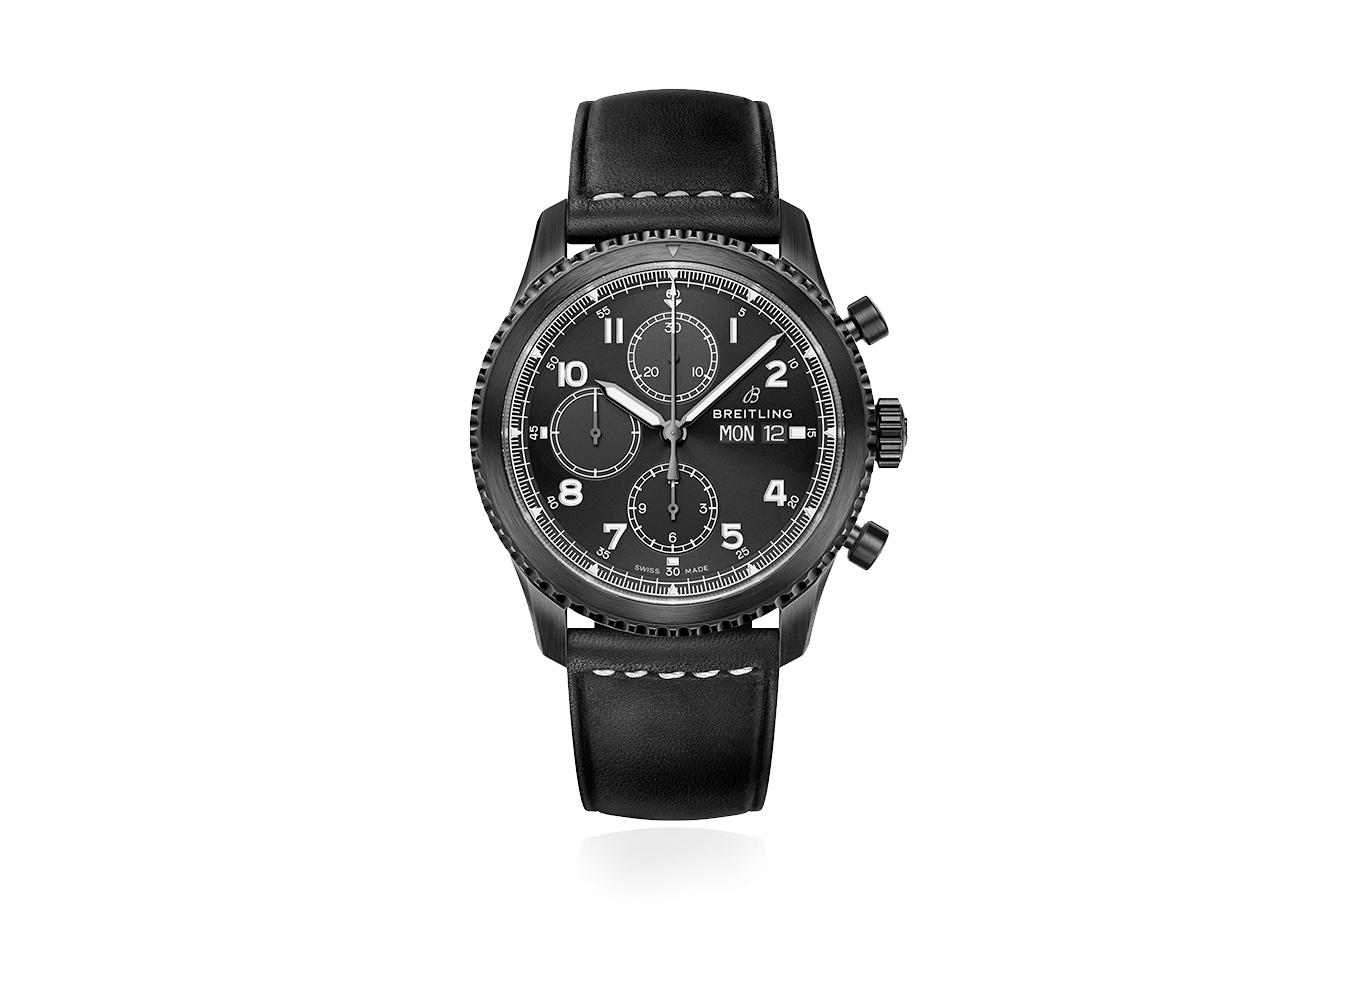 Navitimer 8 Chronograph Blacksteel